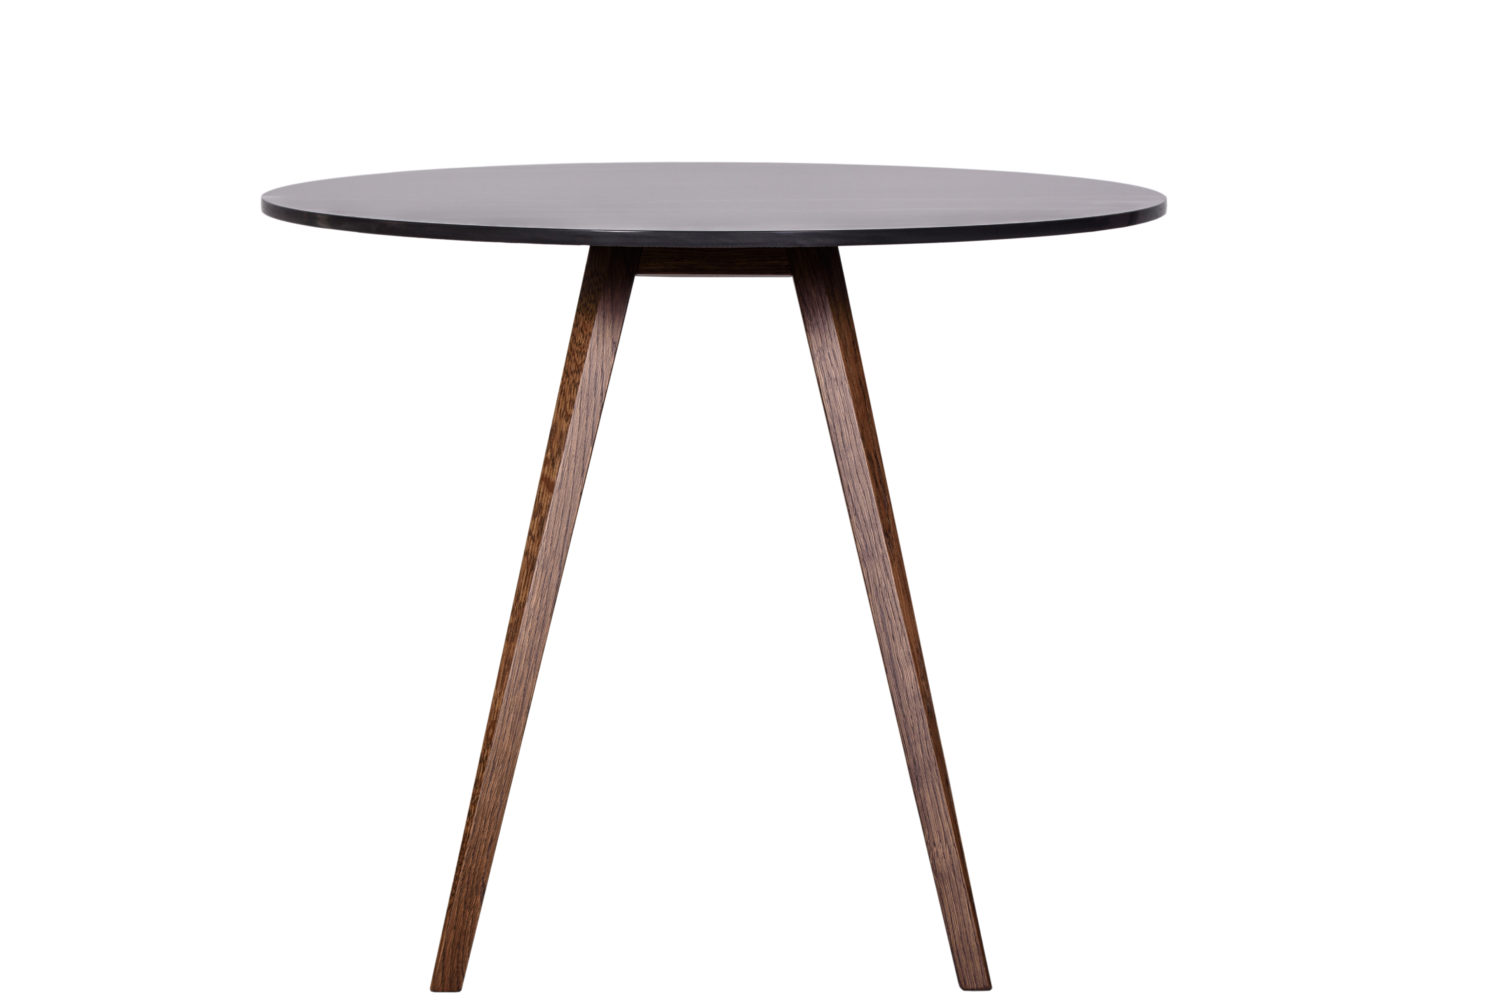 Skey table B fi 75cm top made of quartz sinter